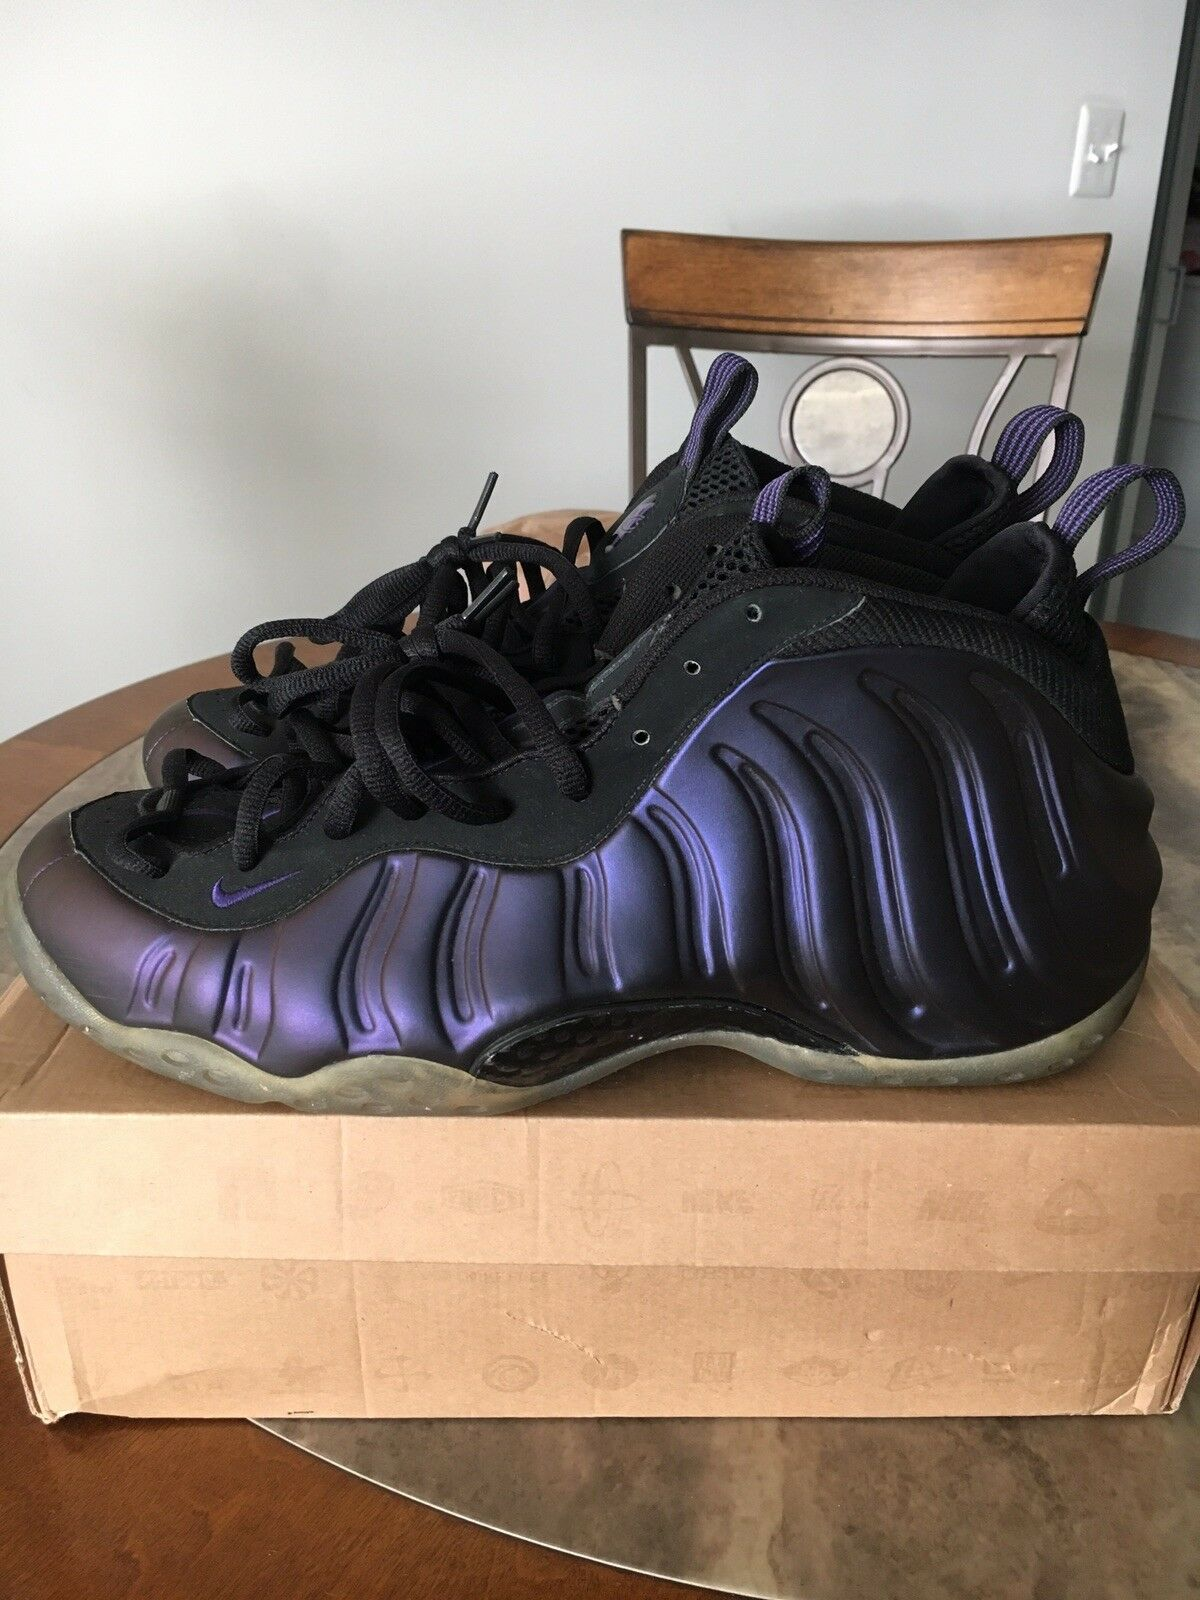 Nike Air Foamposite One Eggplant   Pre-owned Size 13 (2009)